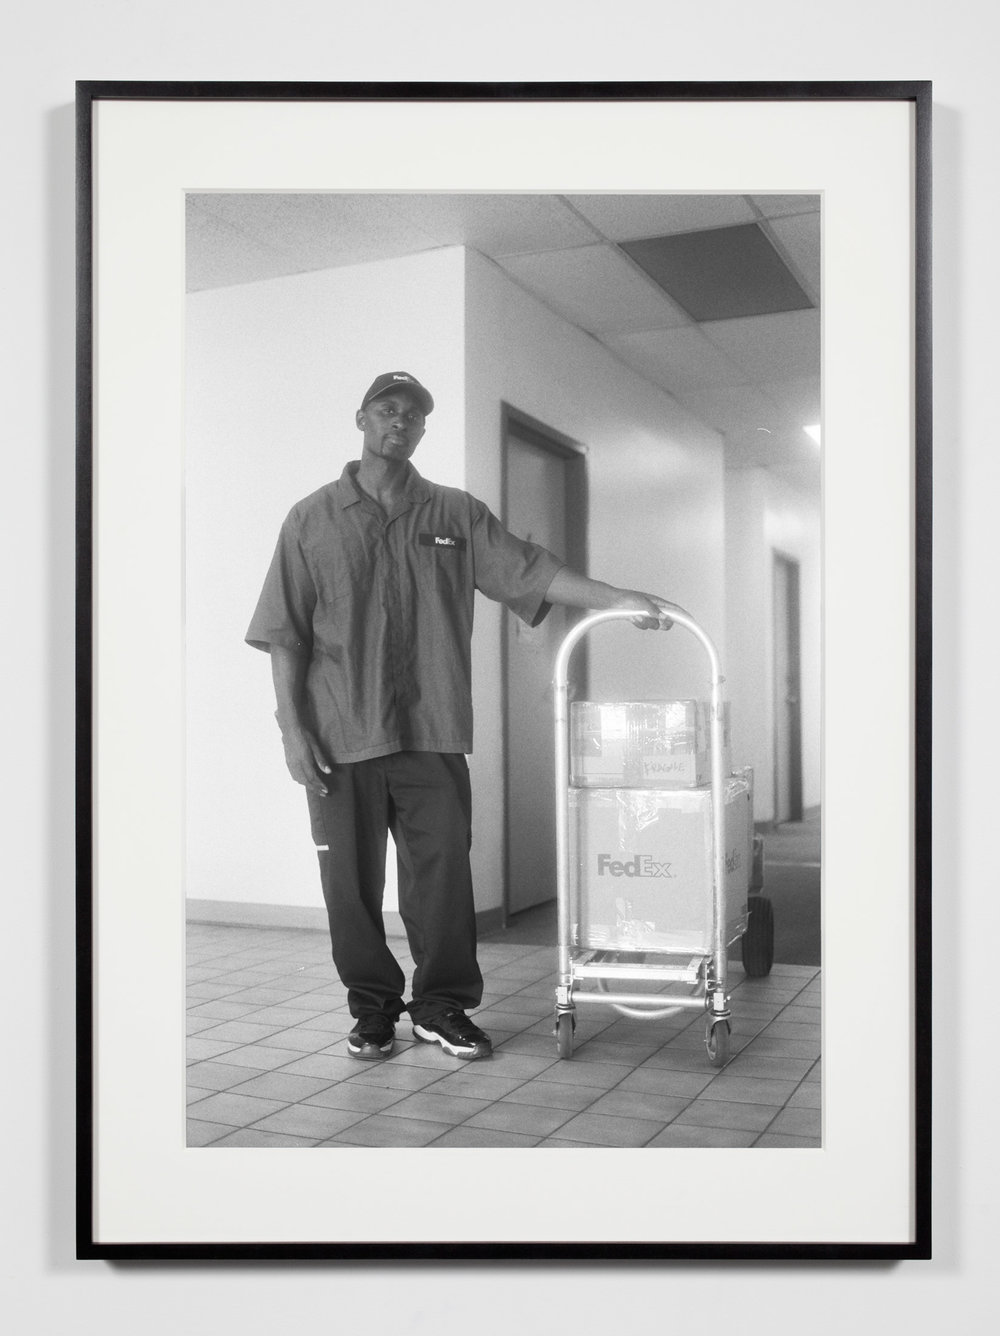 FedEx Courier, Los Angeles, California, September 12, 2008   2011  Epson Ultrachrome K3 archival ink jet print on Hahnemühle Photo Rag paper  36 3/8 x 26 3/8 inches   Industrial Portraits, 2008–    A Diagram of Forces, 2011